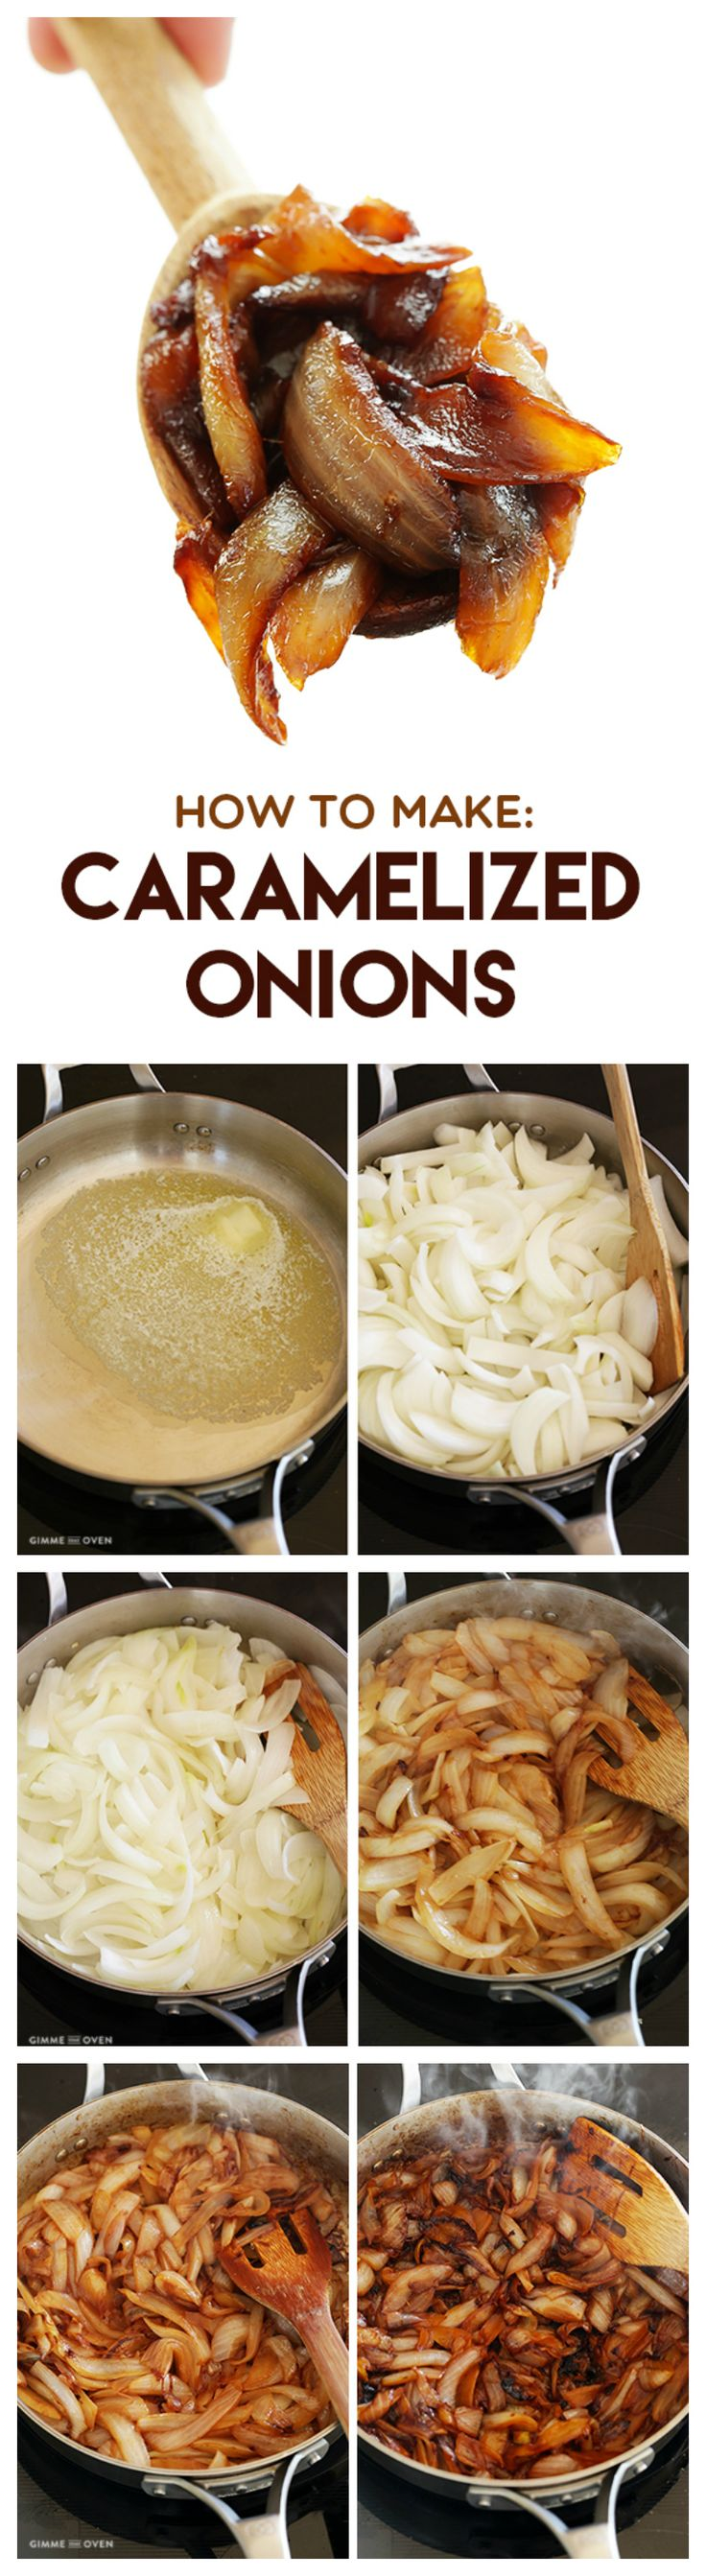 How To Make Caramelized Onions Sub Vegan margarine or olive oil